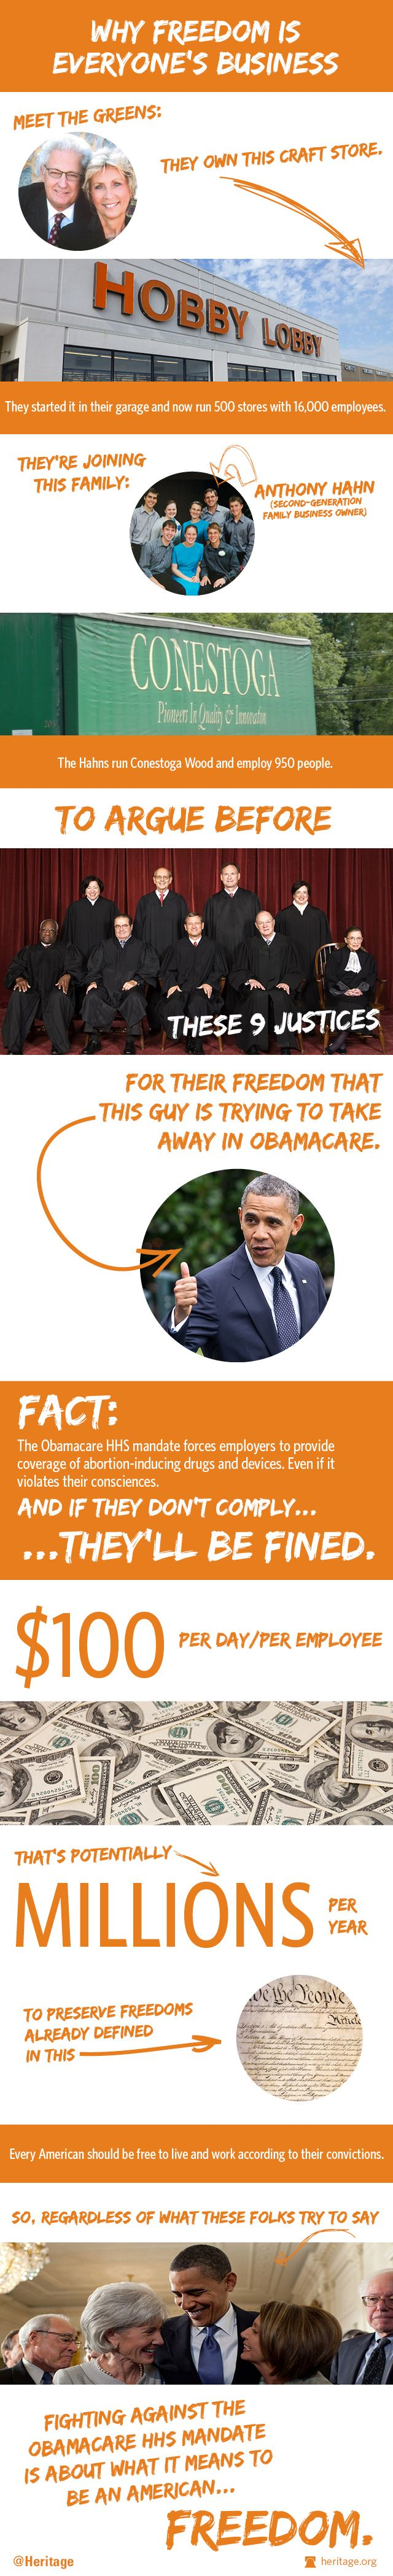 Today at the Supreme Court, some courageous Americans are standing up to Obamacare. Check out our infographic to learn what the Hobby Lobby case is about.